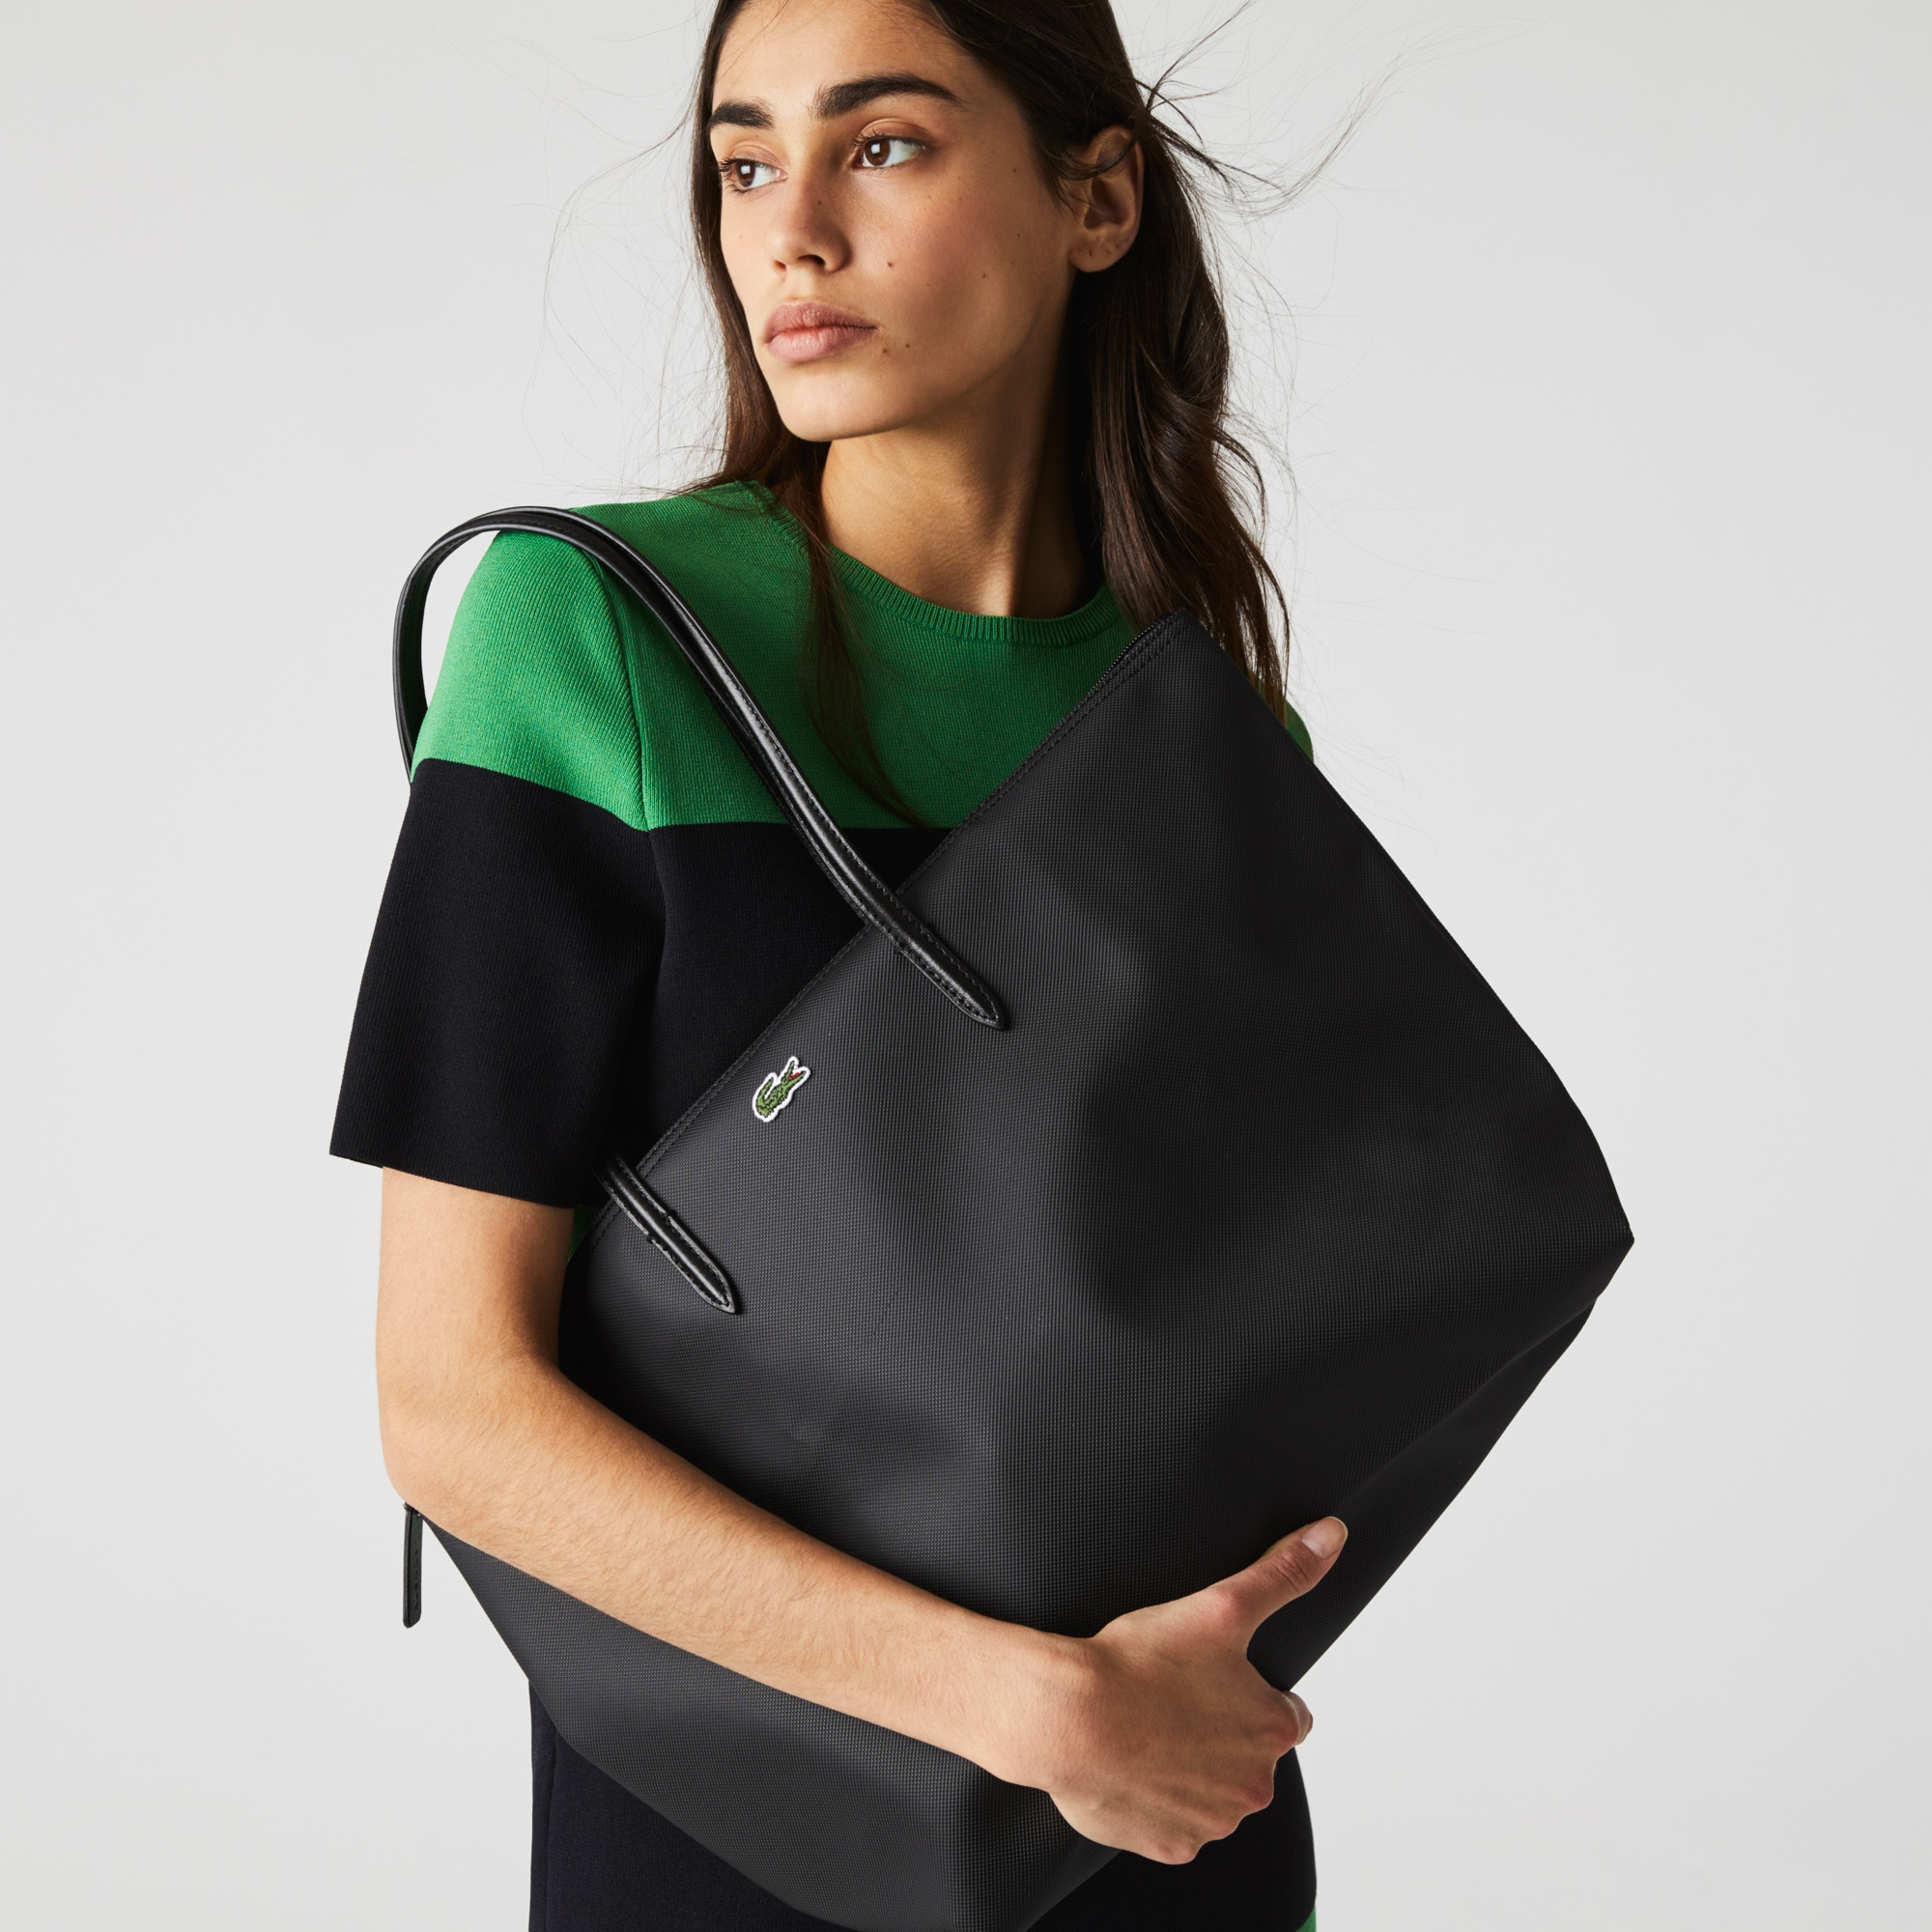 00df2f1a5a5 Bags & Handbags Collection | Women's Leather Goods | LACOSTE